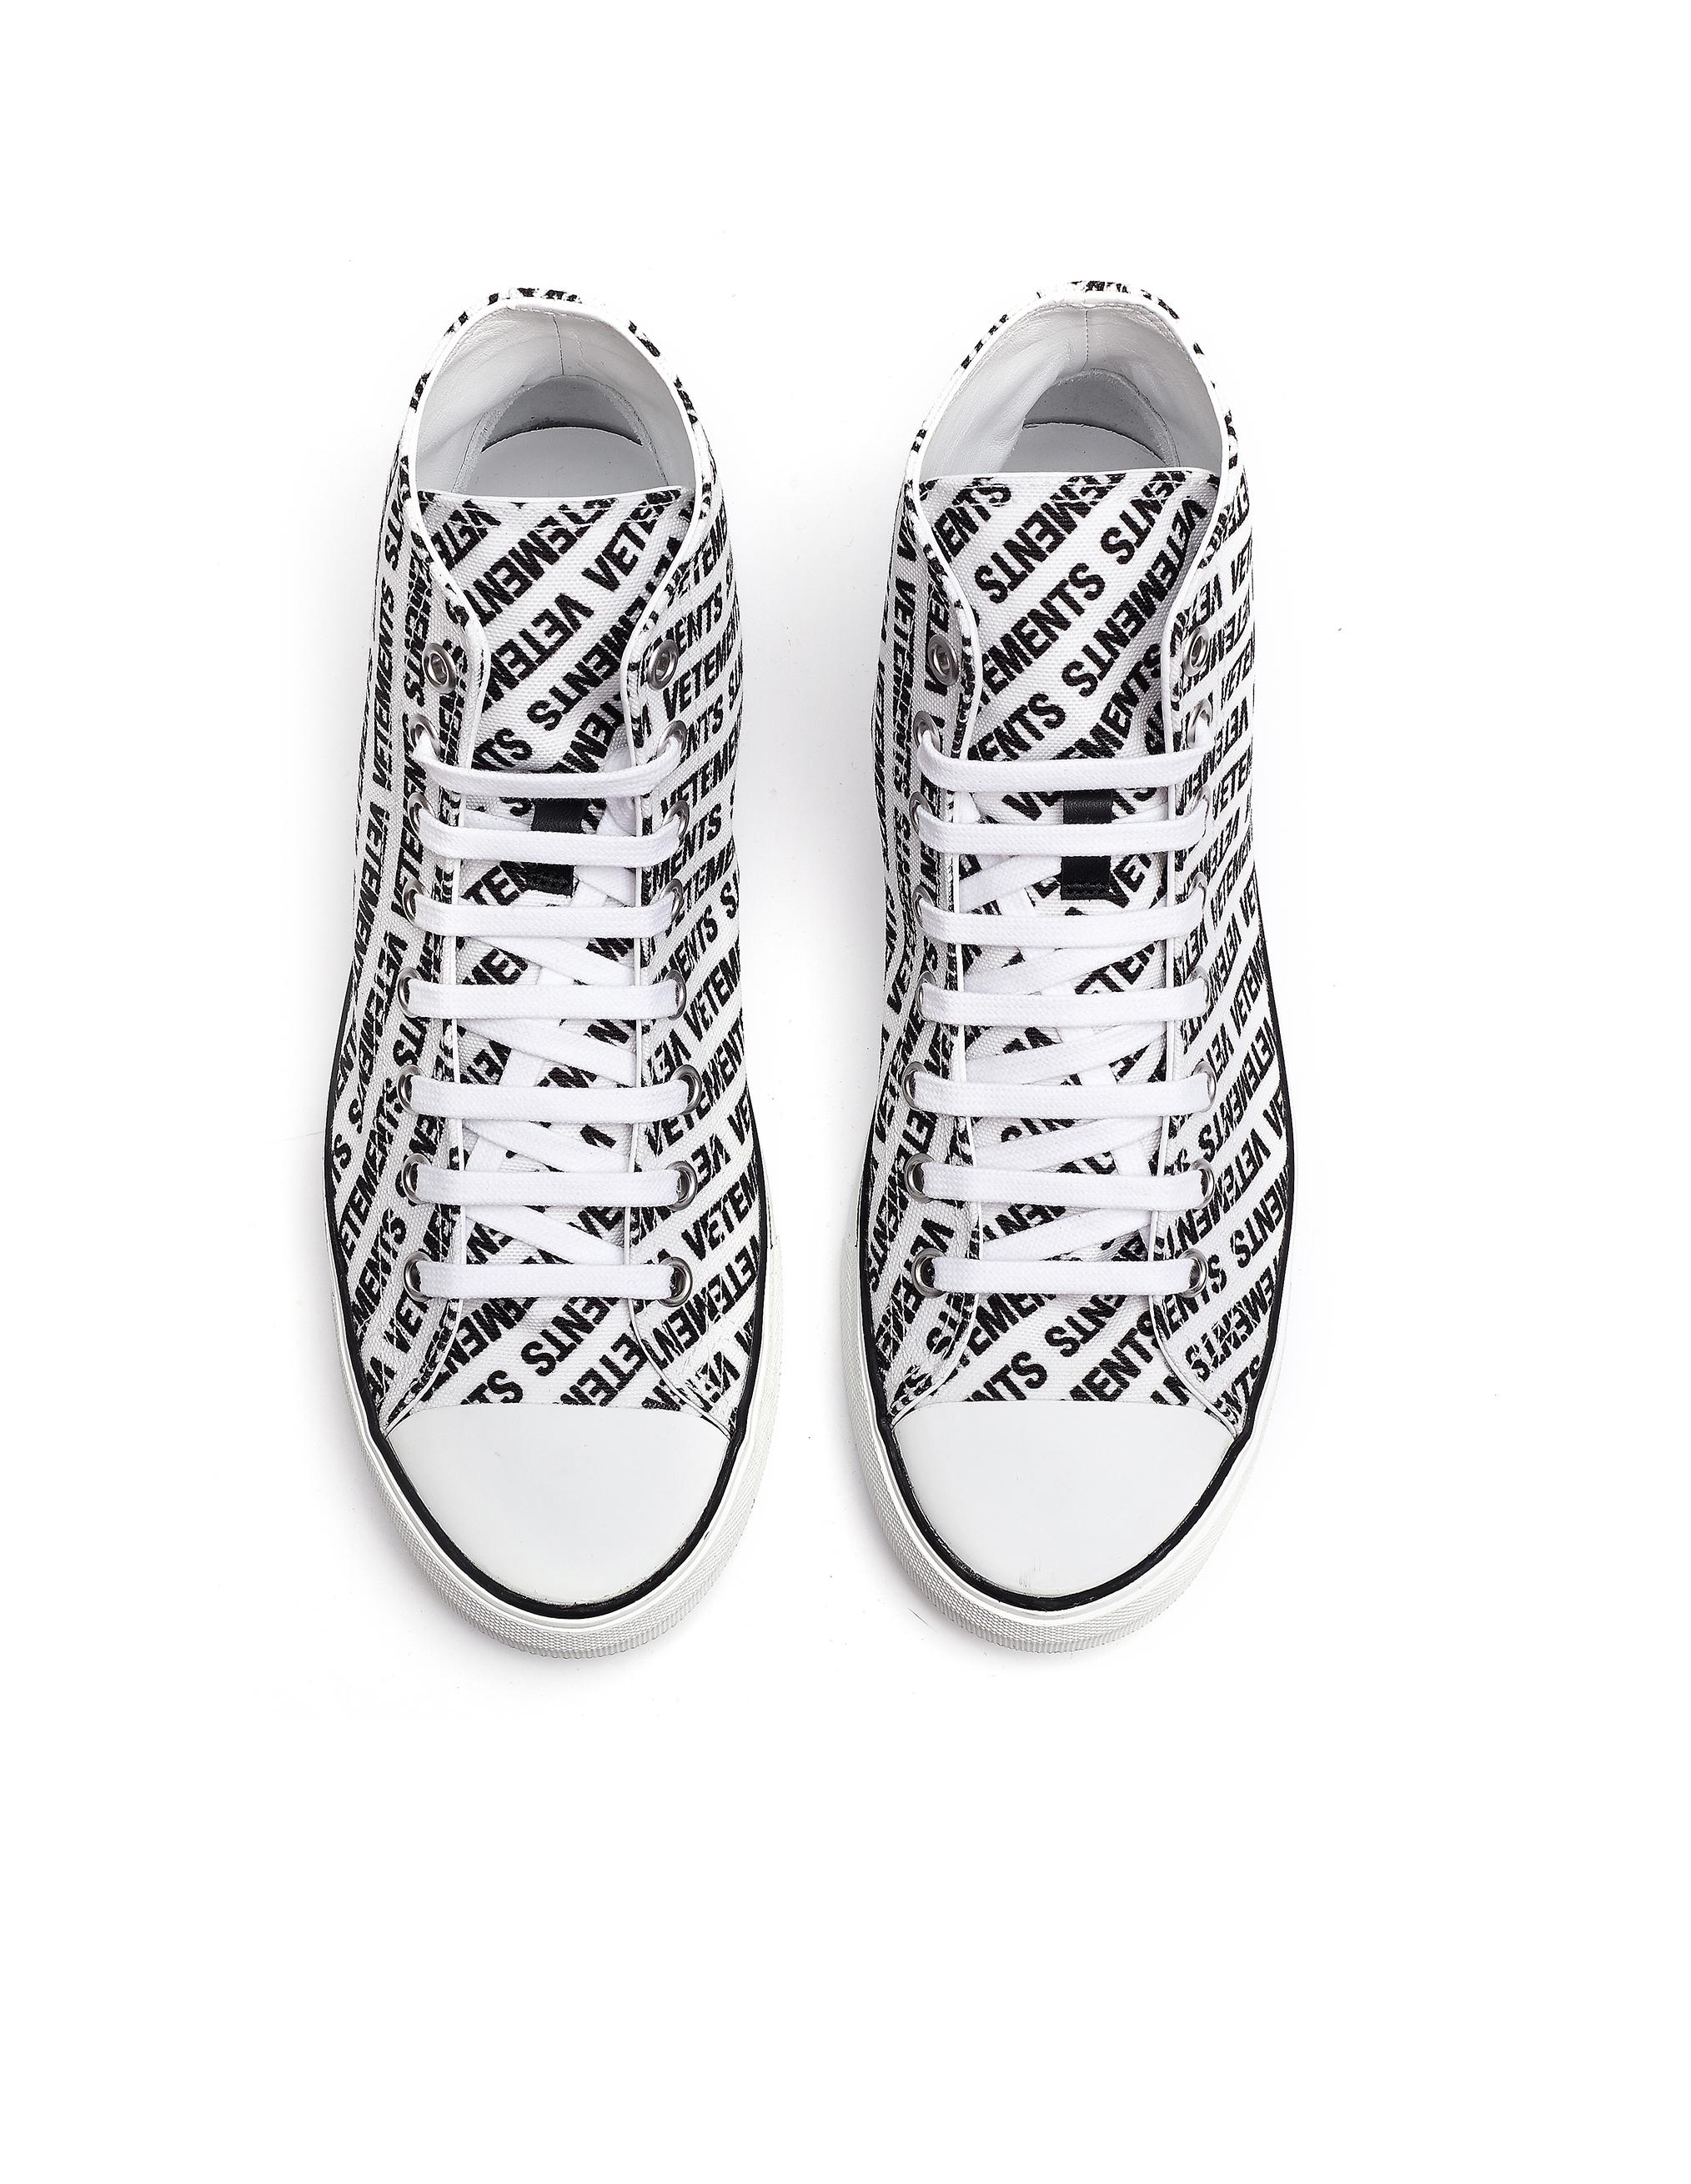 3ad9632273774 Vetements White Logo Printed Converse Sneakers in White for Men - Save 28%  - Lyst